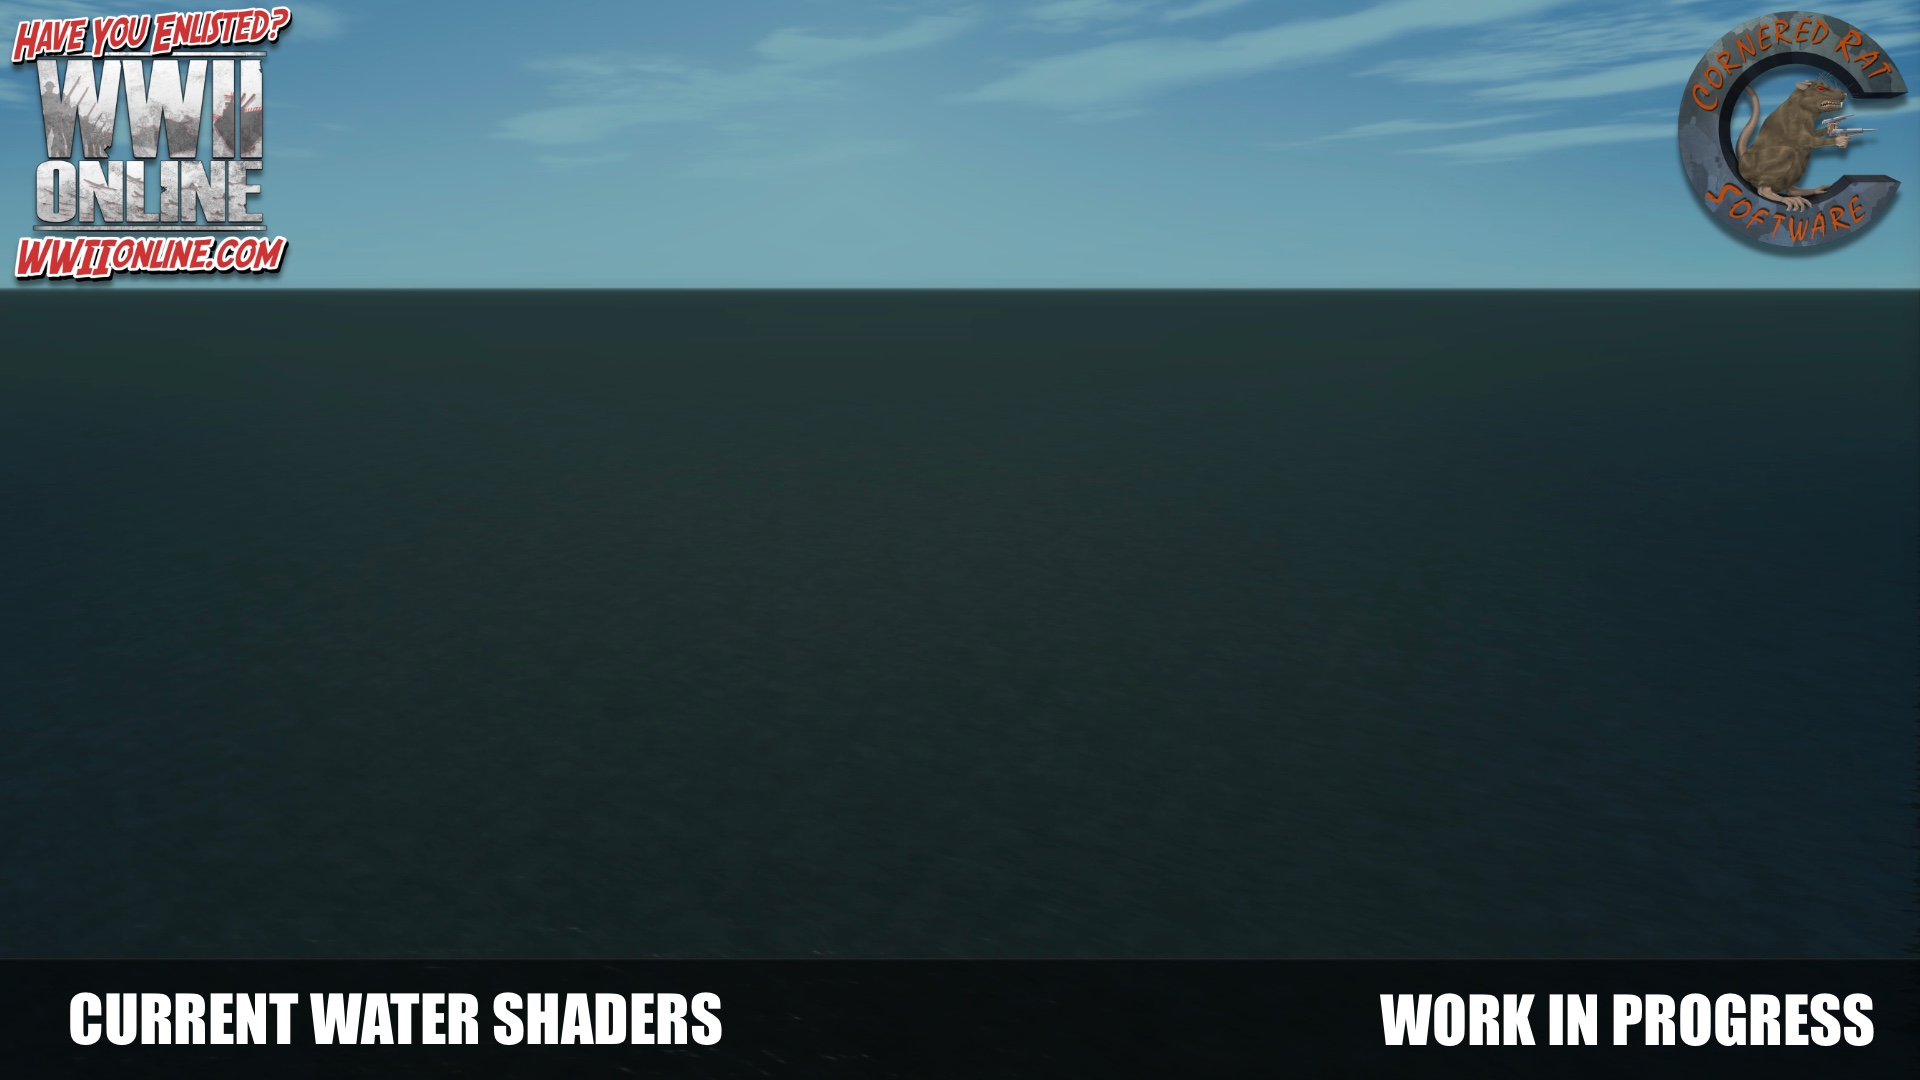 1 water shaders current